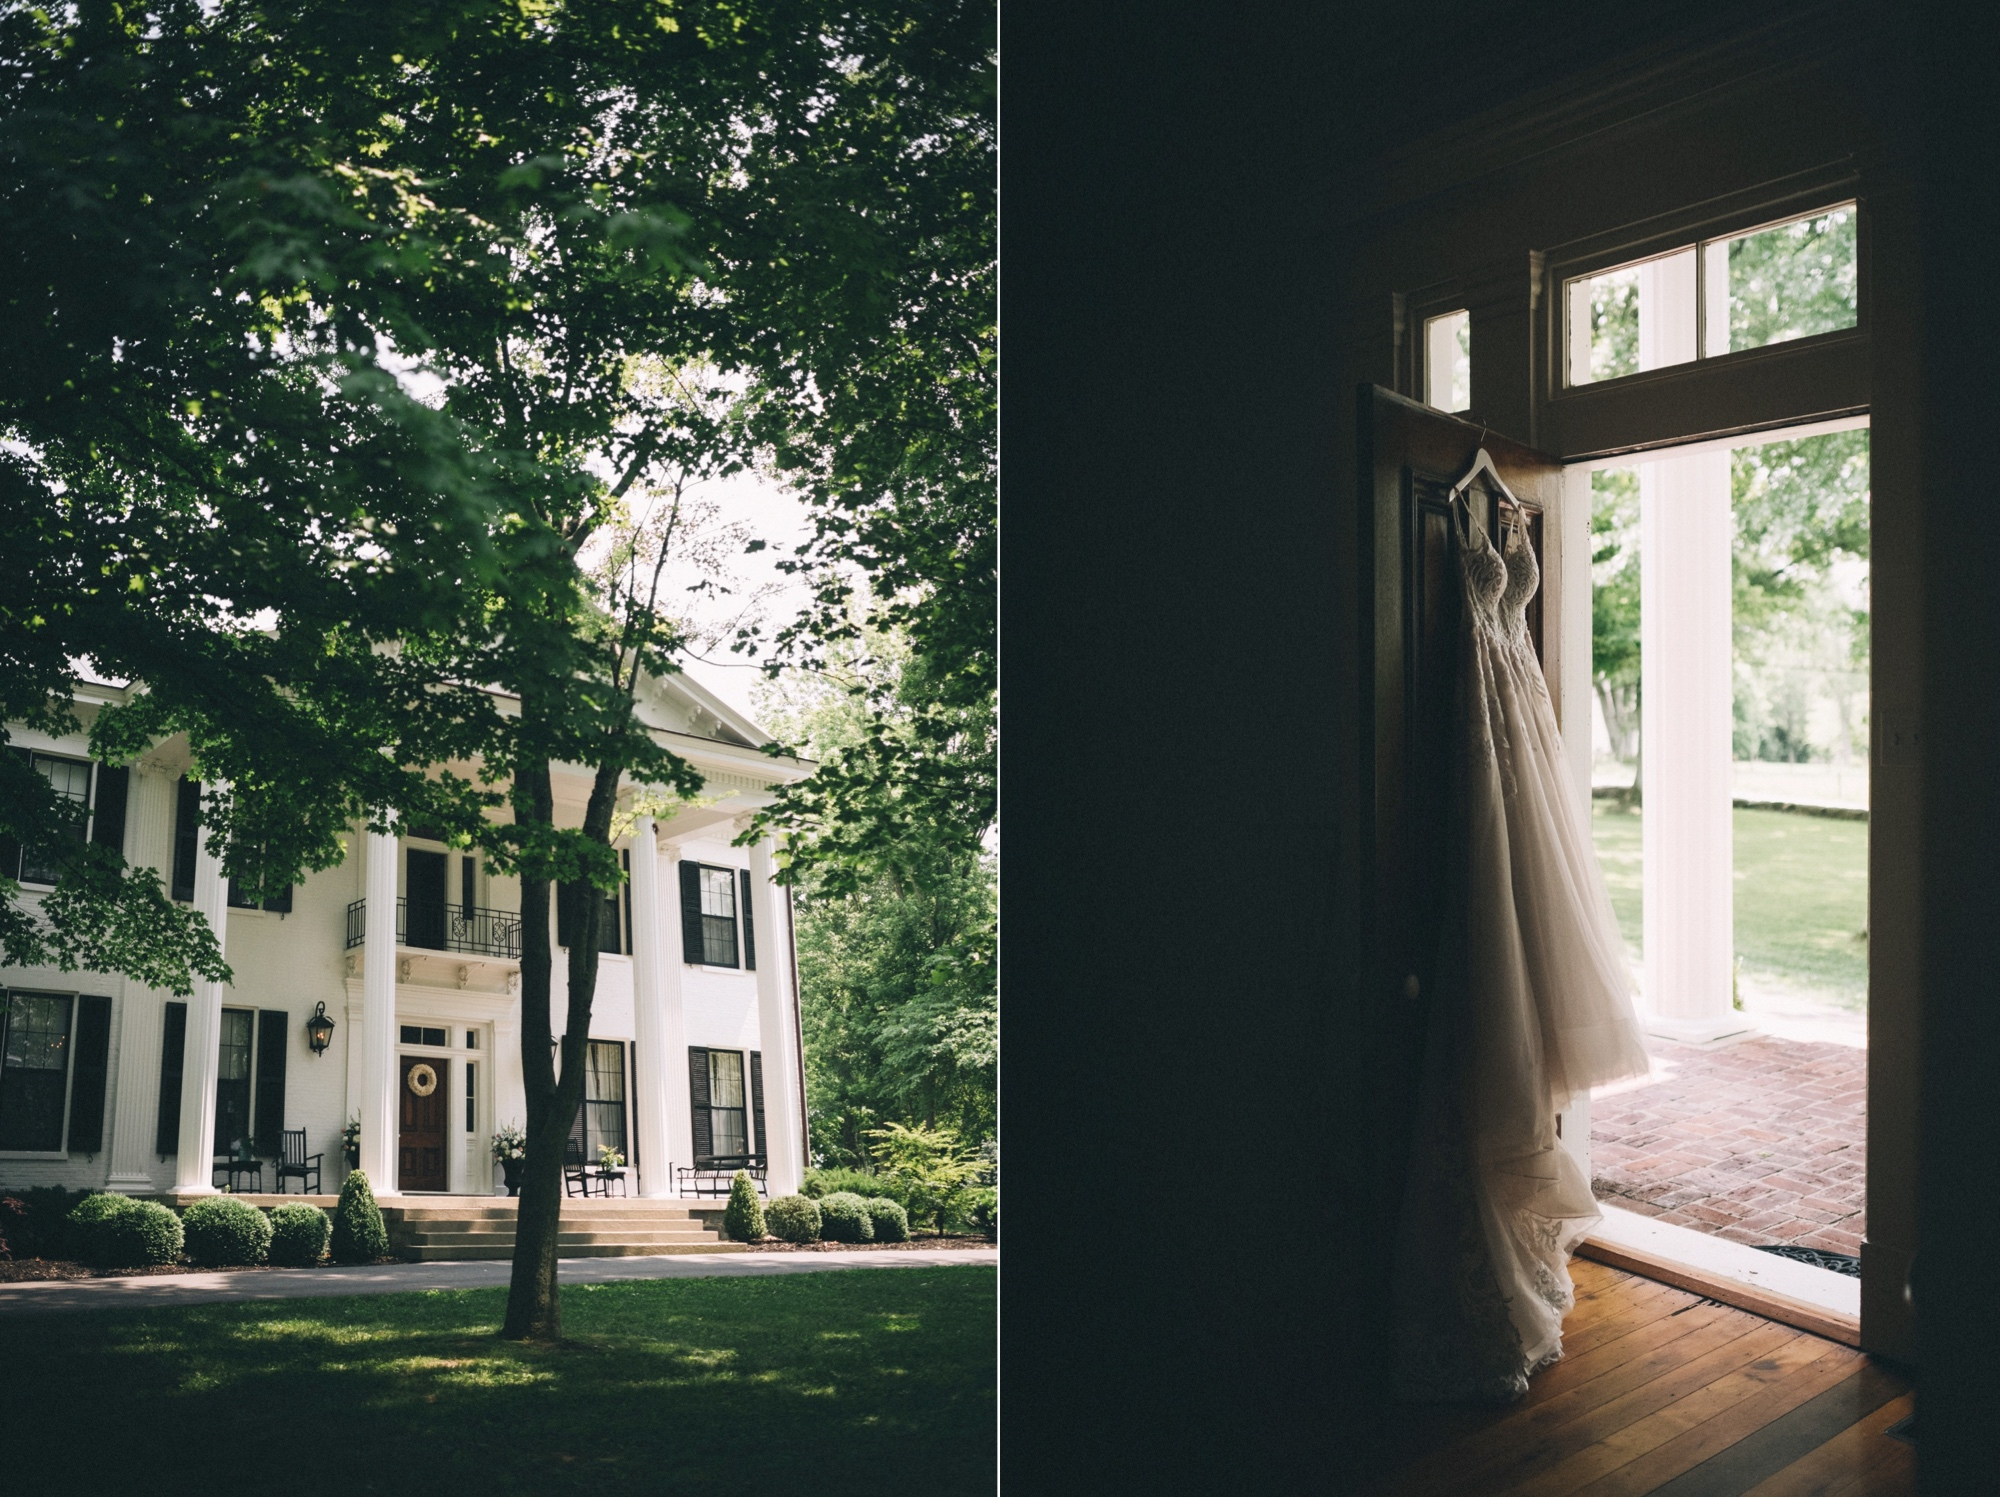 Left imageL The exterior of Ashford Acres inn - a historic two story white home with four large columns and black wooden shutters. Right image: a wedding dress hangs in a doorway. You can see a white column outside. The dress has a lace top and tulle in the bottom.